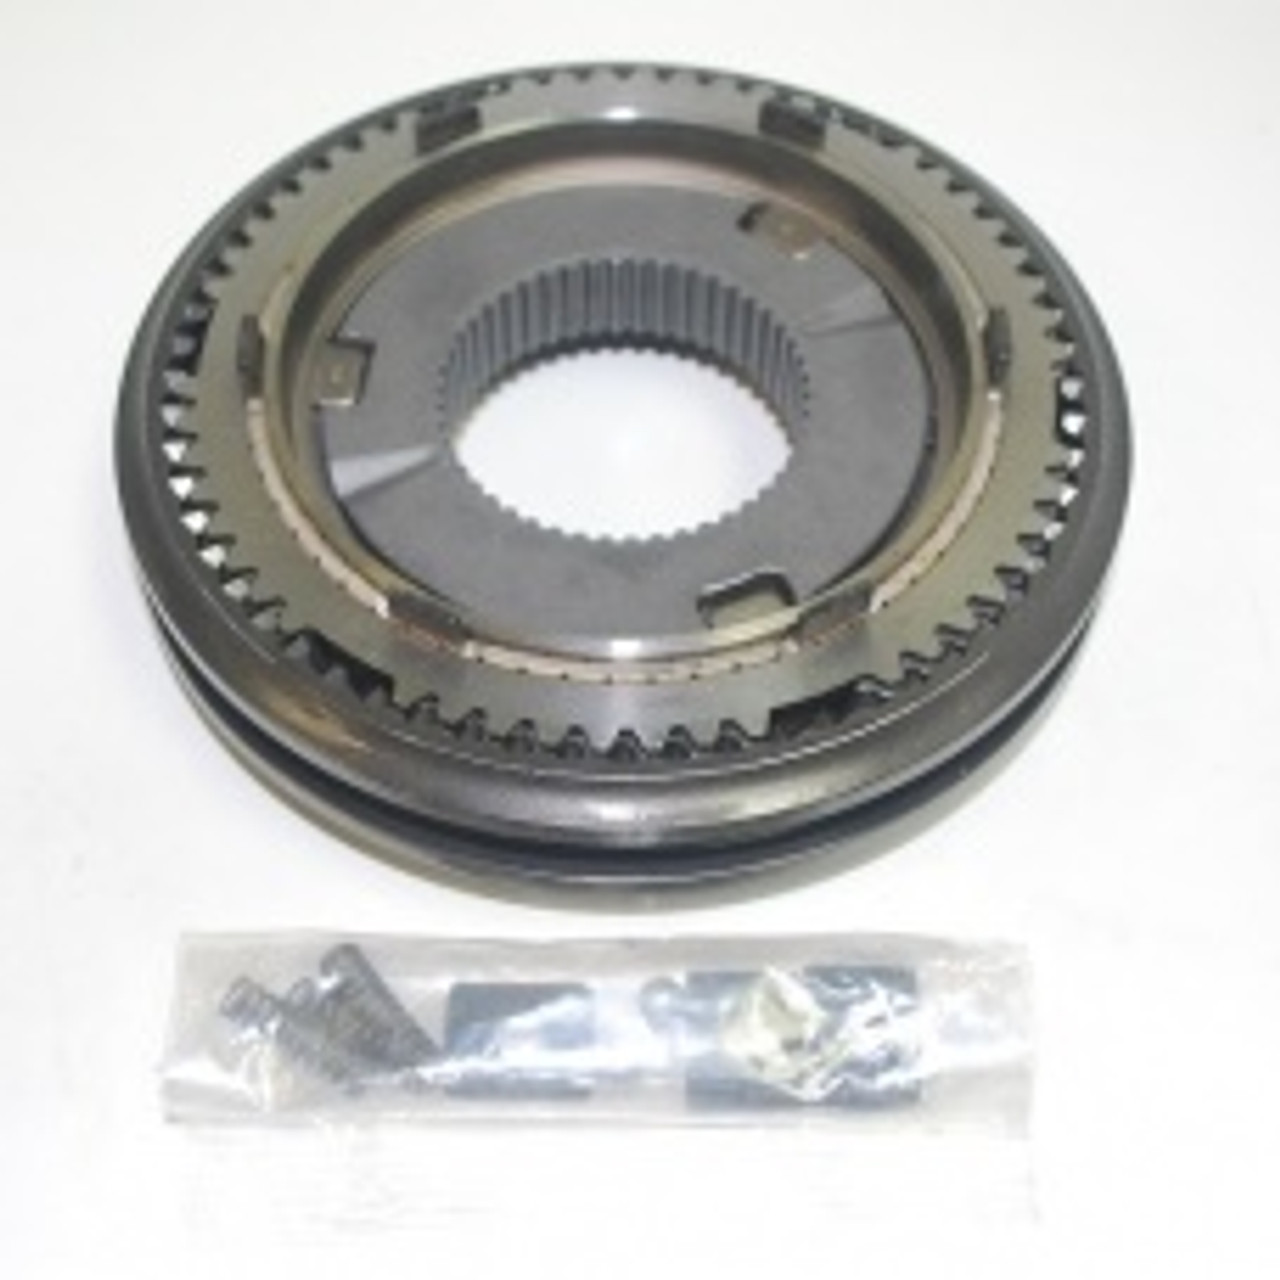 ZF S6-650 S6-750 6 speed low sleeve assembly reverse gear synchronizer hub